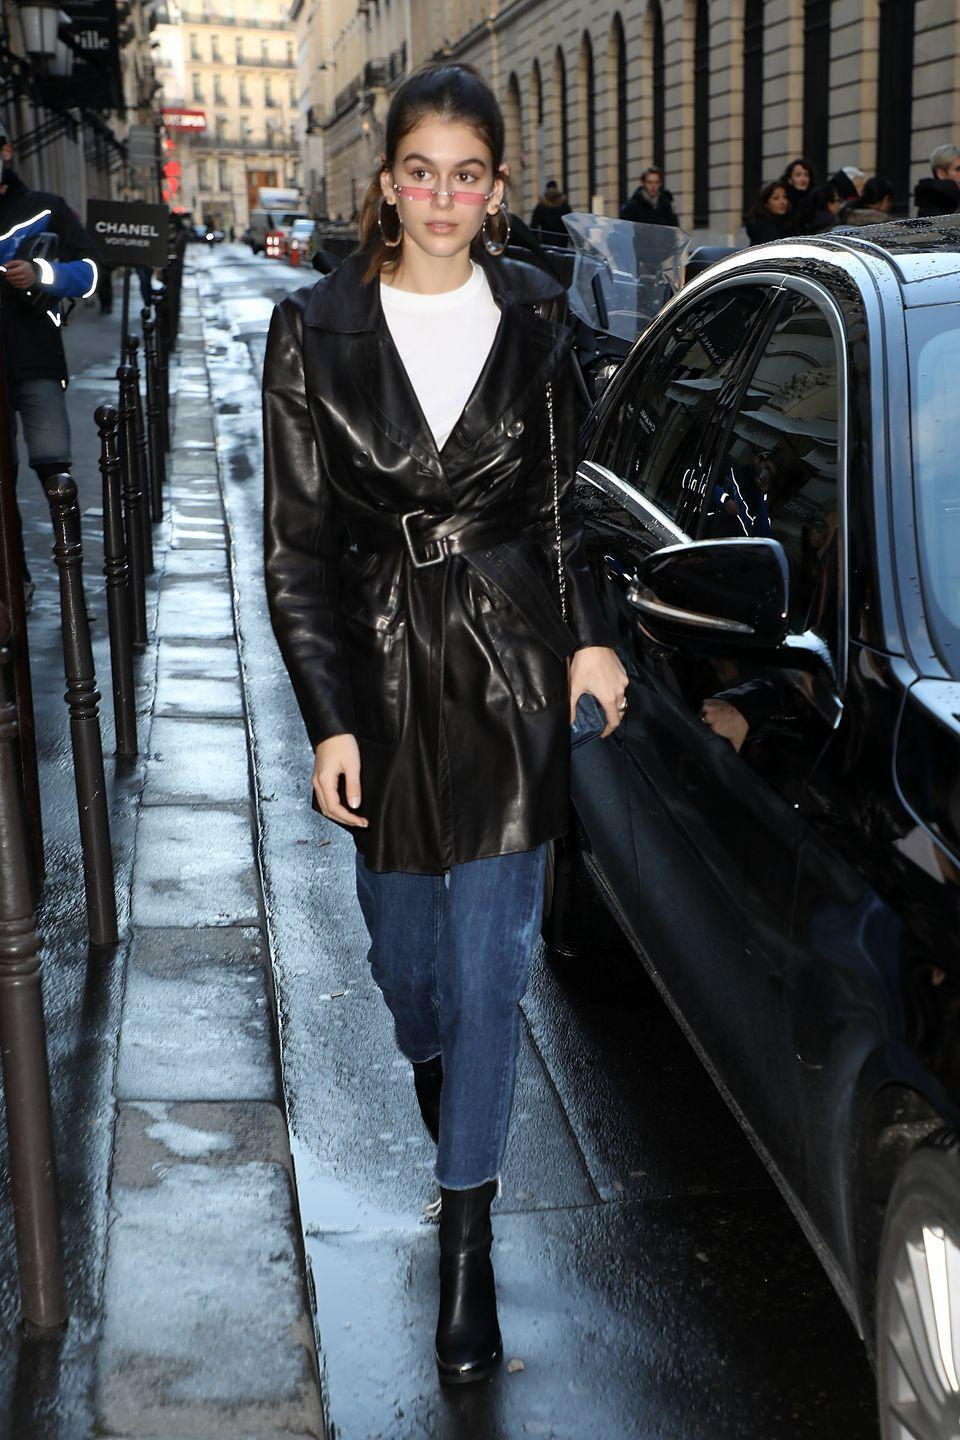 <p>Kaia arrives at Chanel office in Paris wearing a leather coat, bootcut means, black boots and a simple White t-shirt. She paired the look with half moon rose-tinted sunglasses. </p>